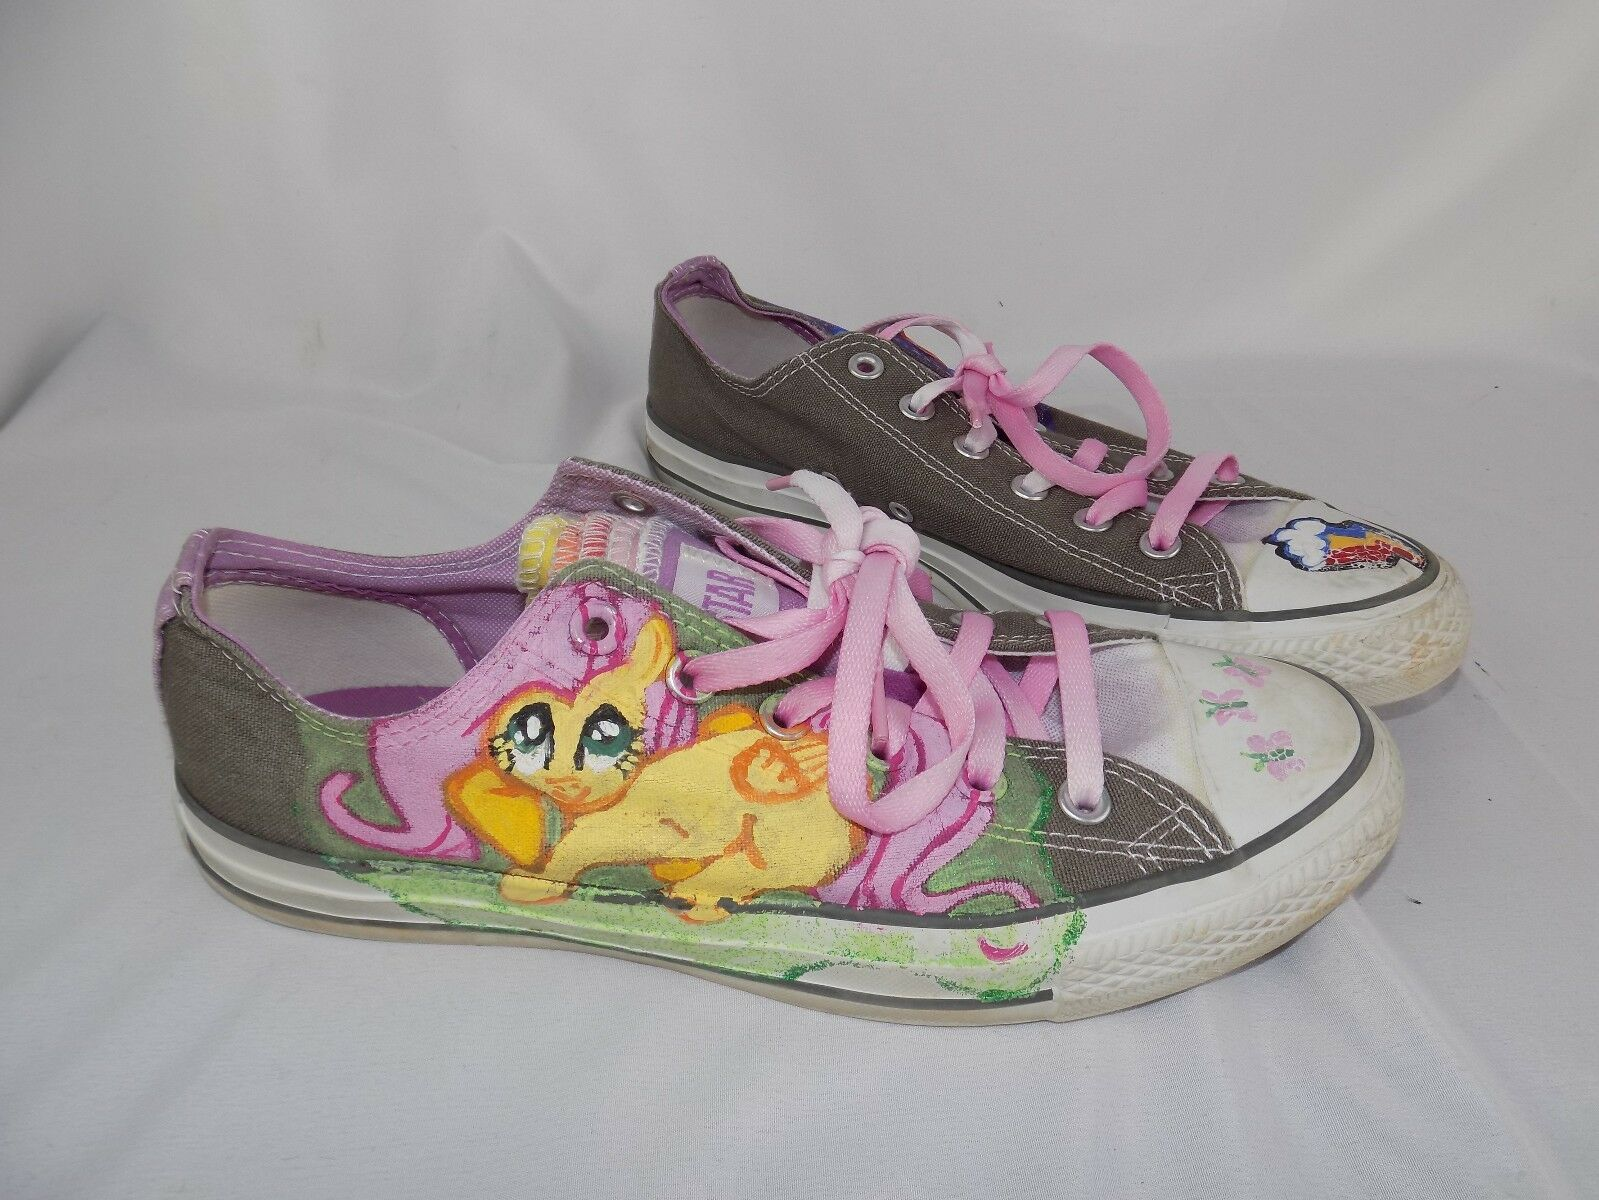 RARE Converse All Star My Little Pony shoes sneakers Women's Sz 10